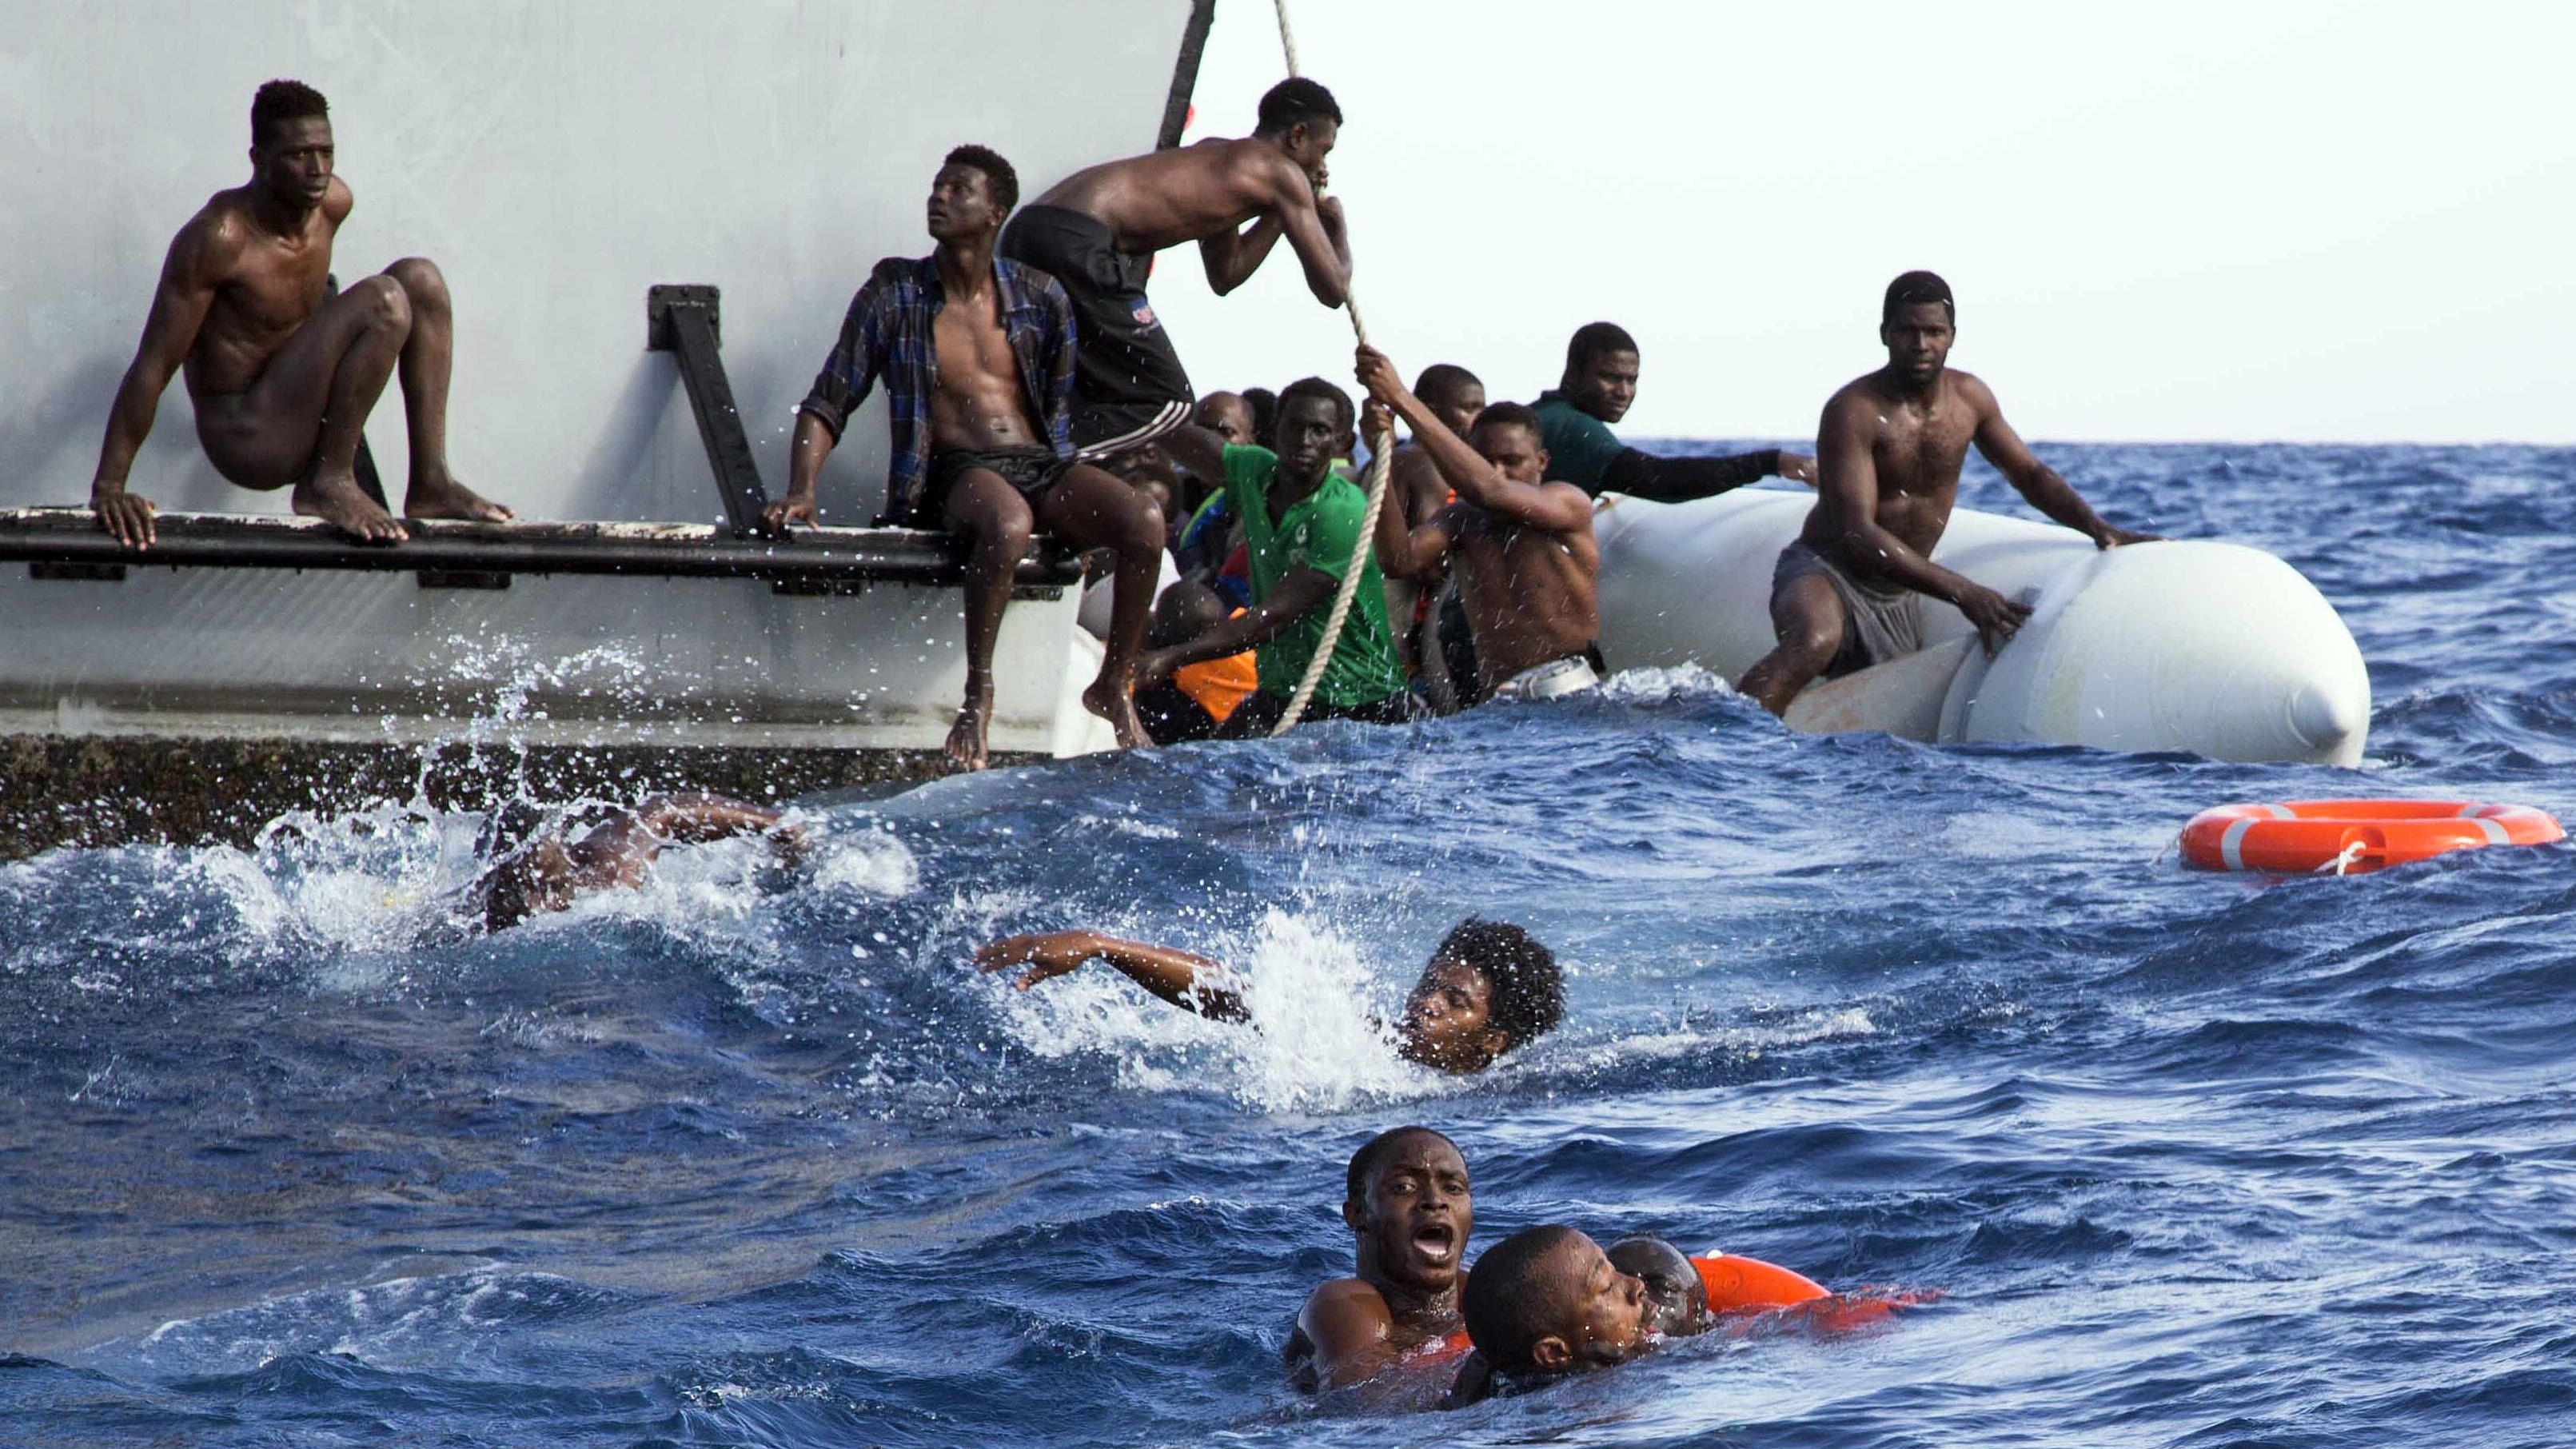 Migranti: Libia, 90-100 dispersi